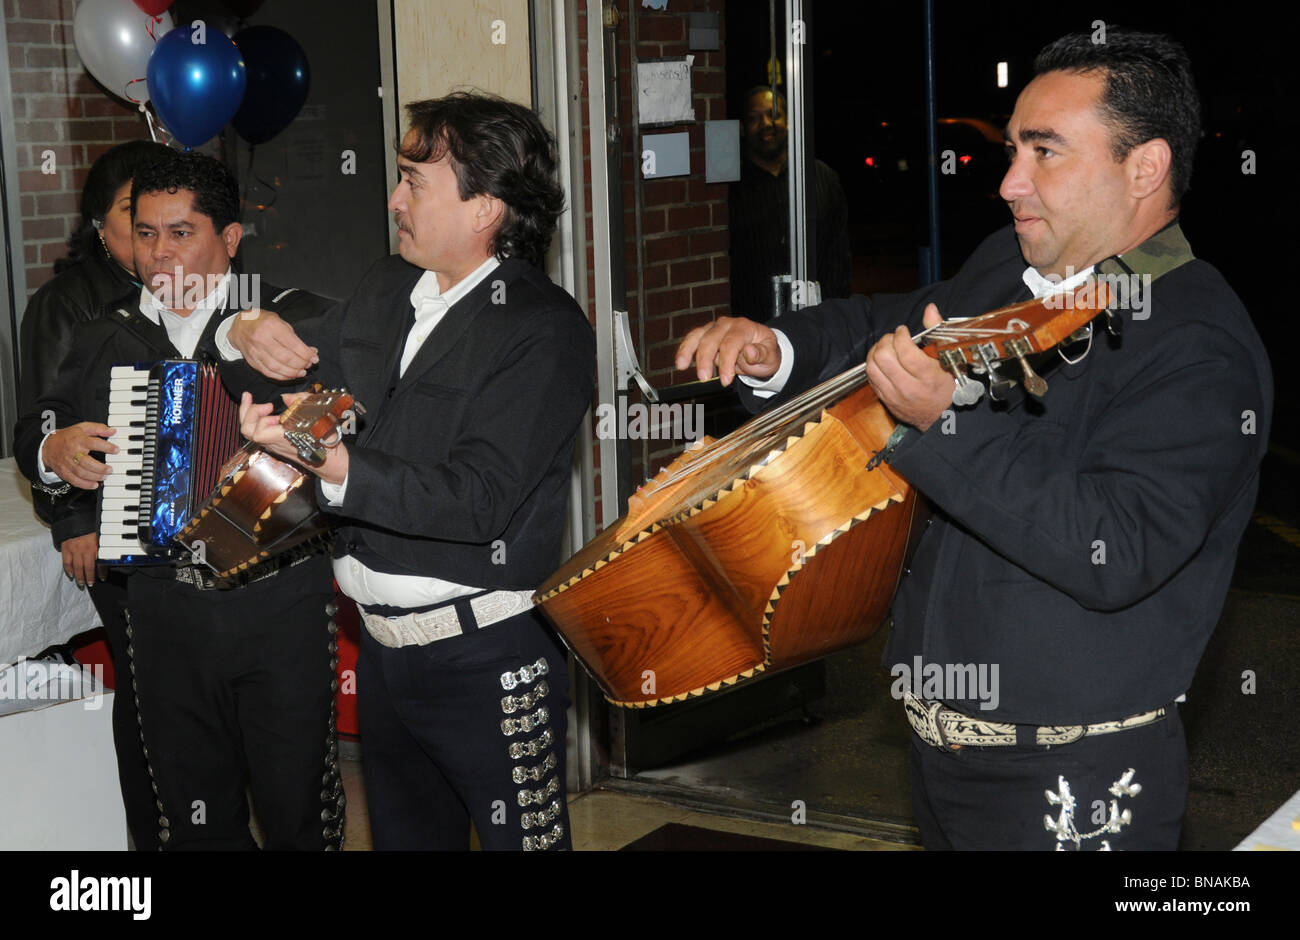 three Mexican musicians play at a political event in Forestville, Maryland - Stock Image